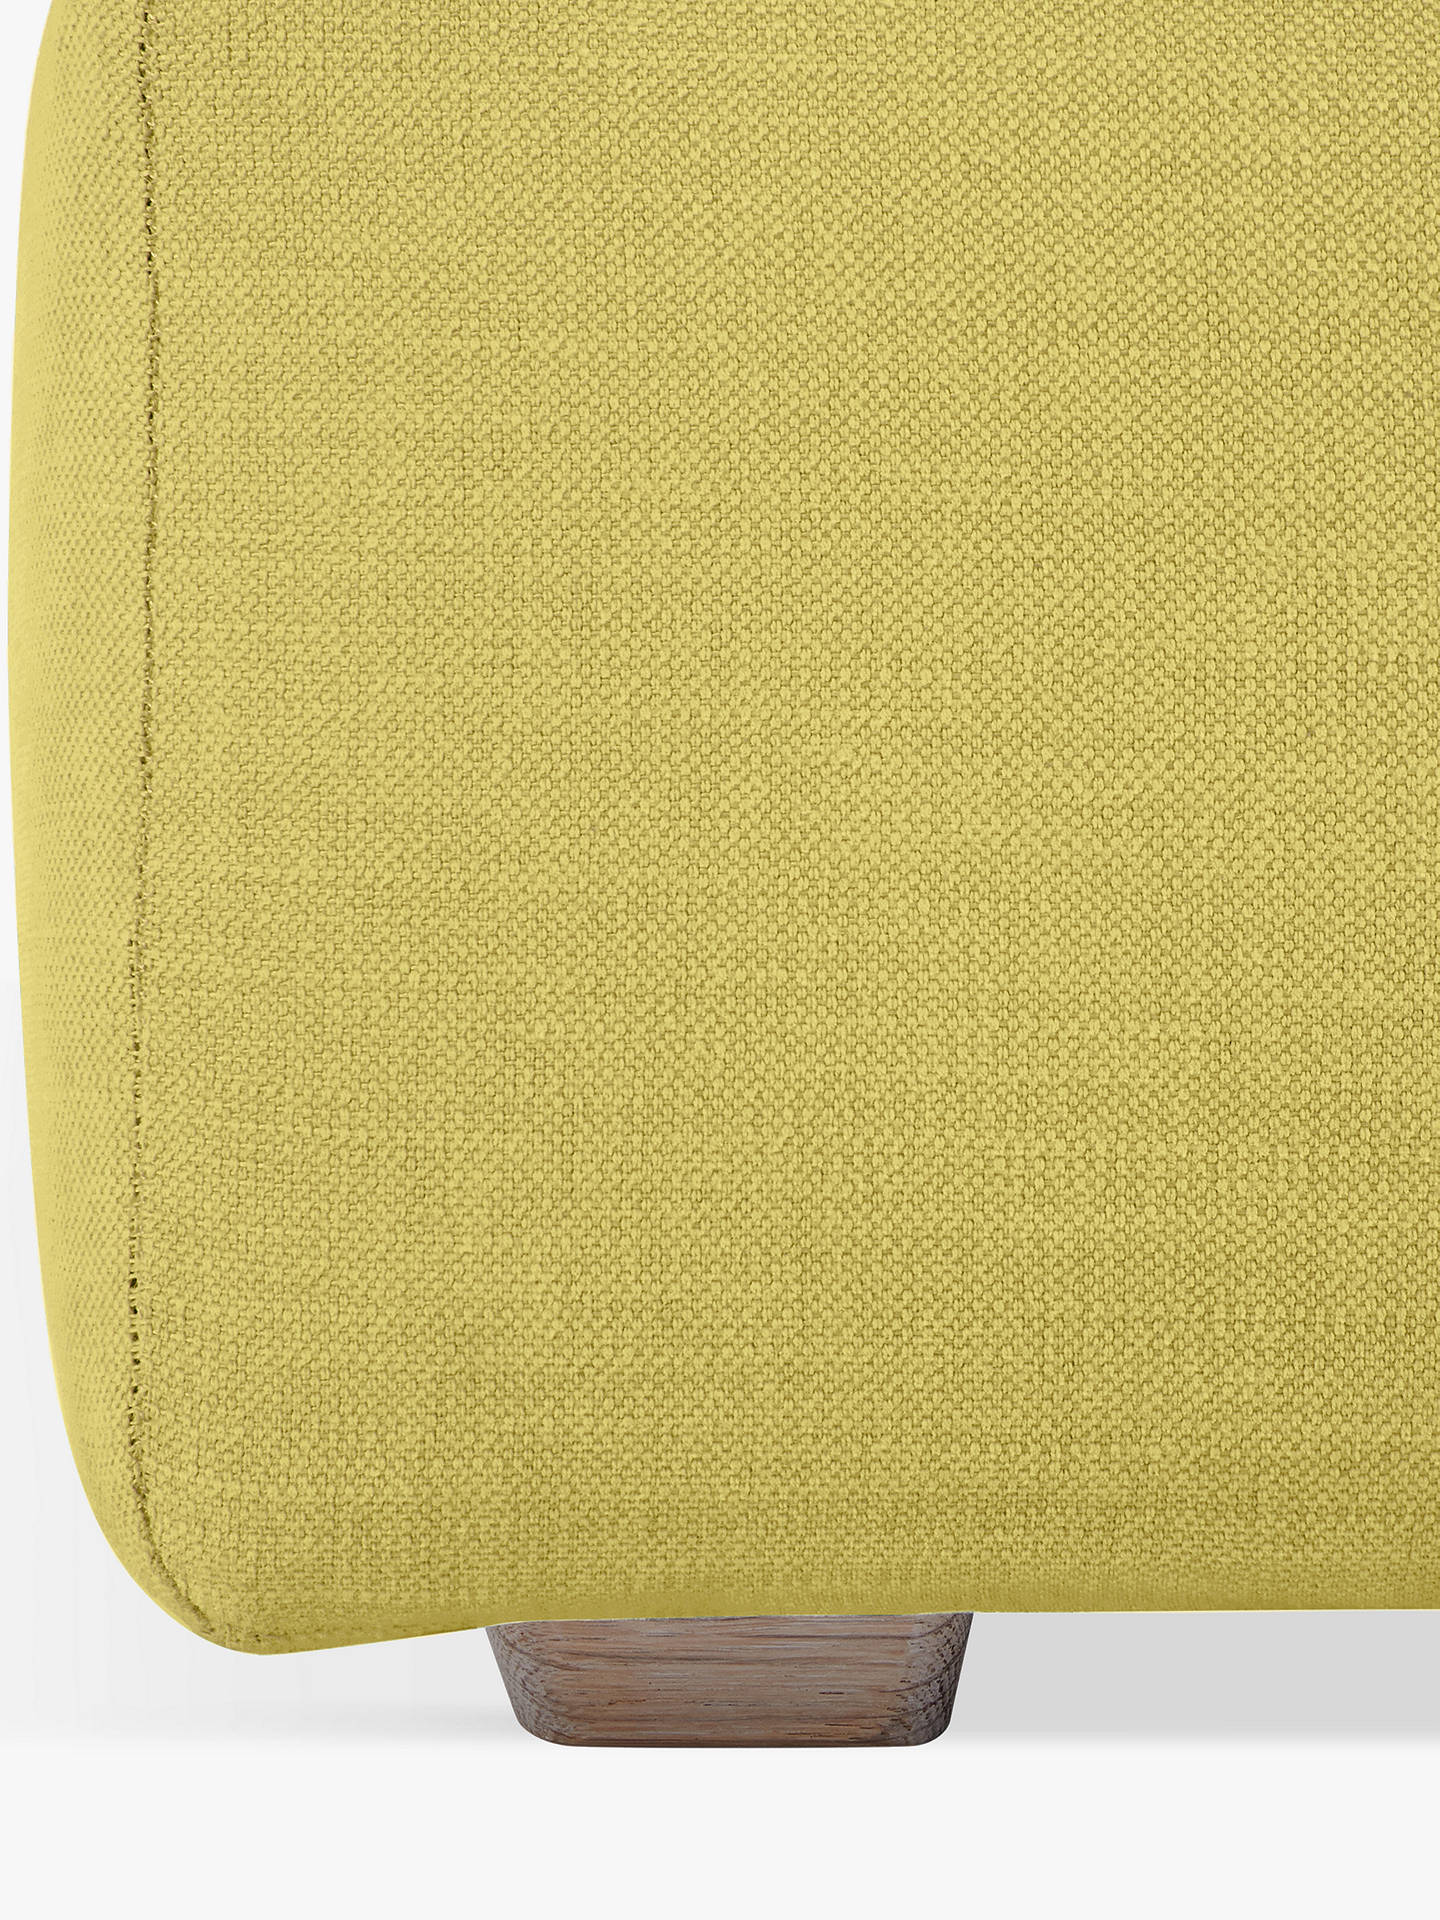 Buy Floppy Jo Footstool by Loaf at John Lewis, Brushed Cotton Maize Yellow Online at johnlewis.com